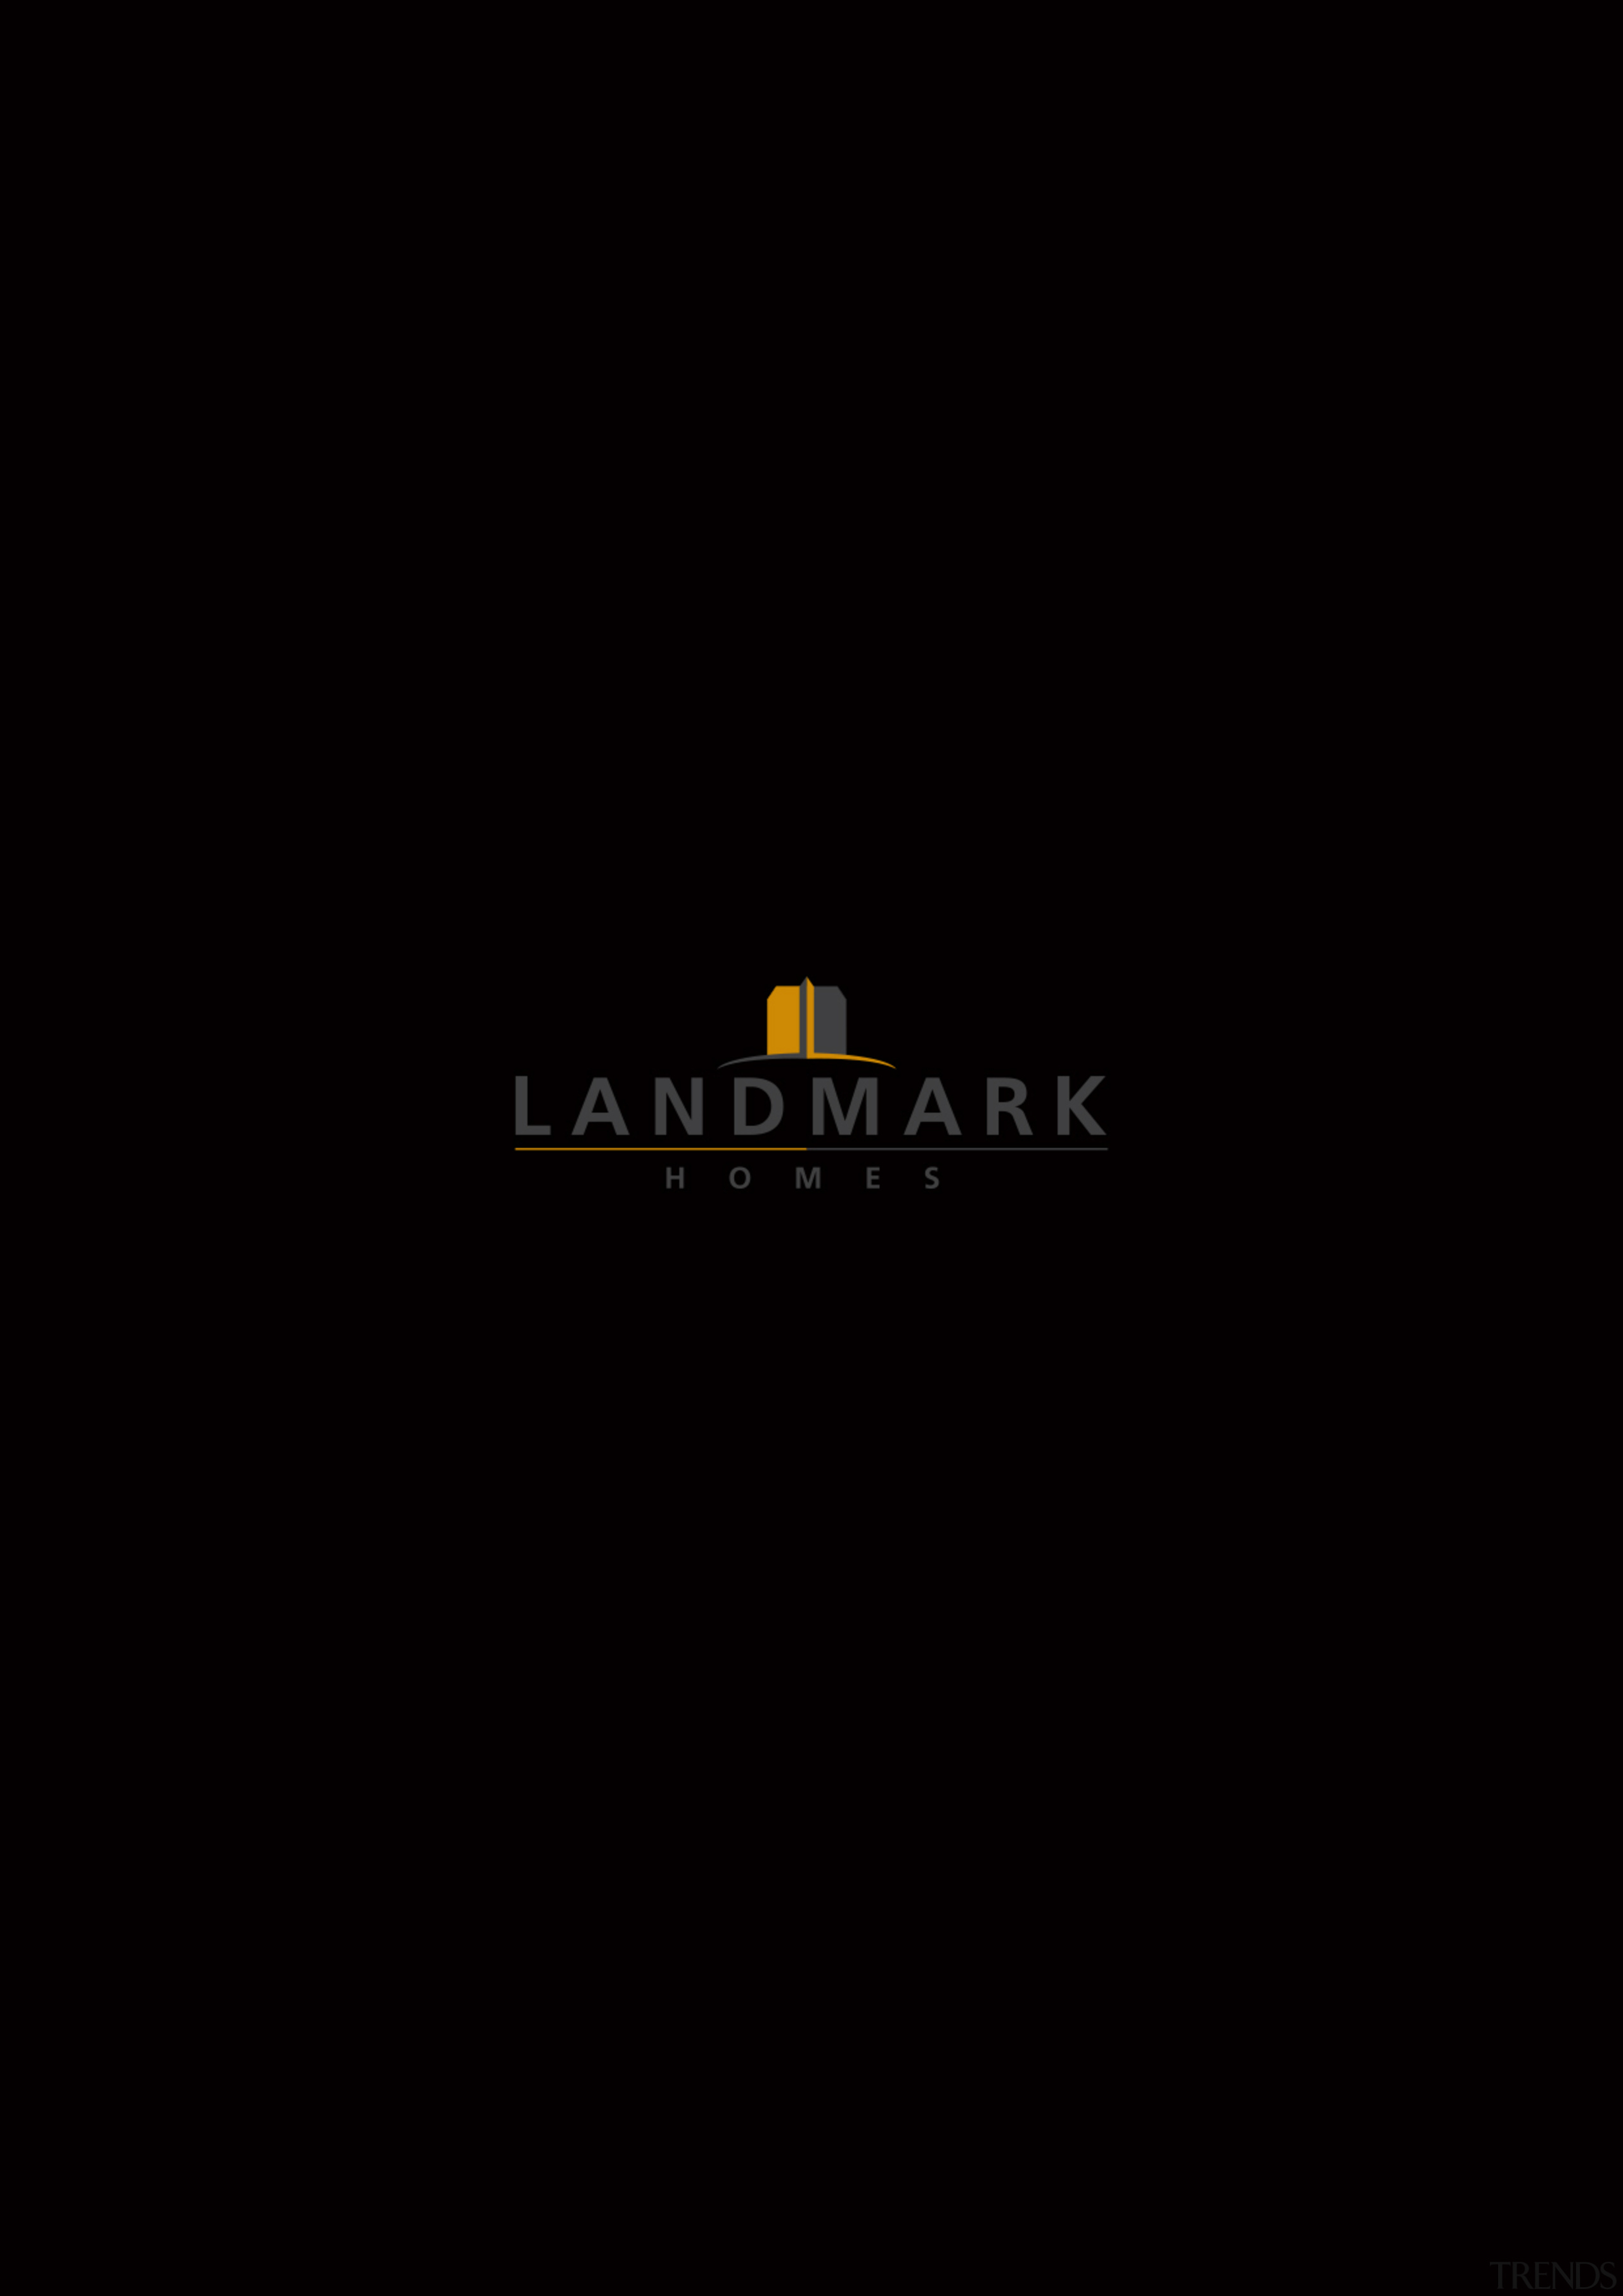 Landmark homes j July 2019 - black | black, brand, darkness, font, graphics, logo, photography, text, yellow, black